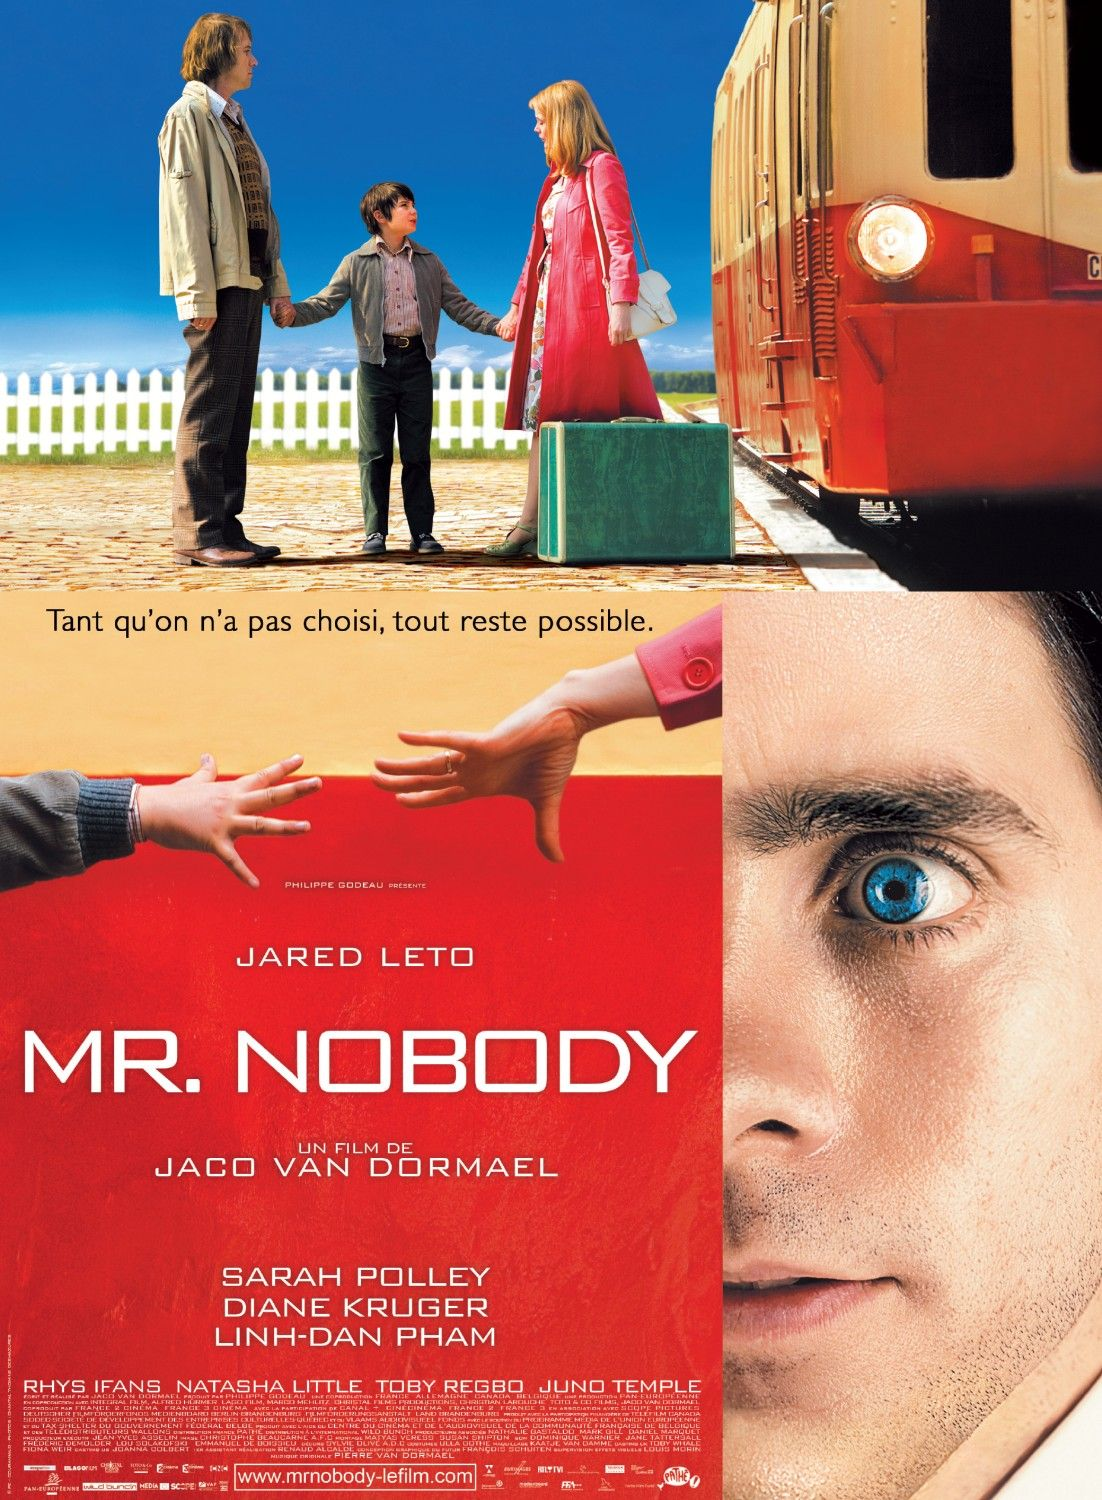 mr nobody trailer